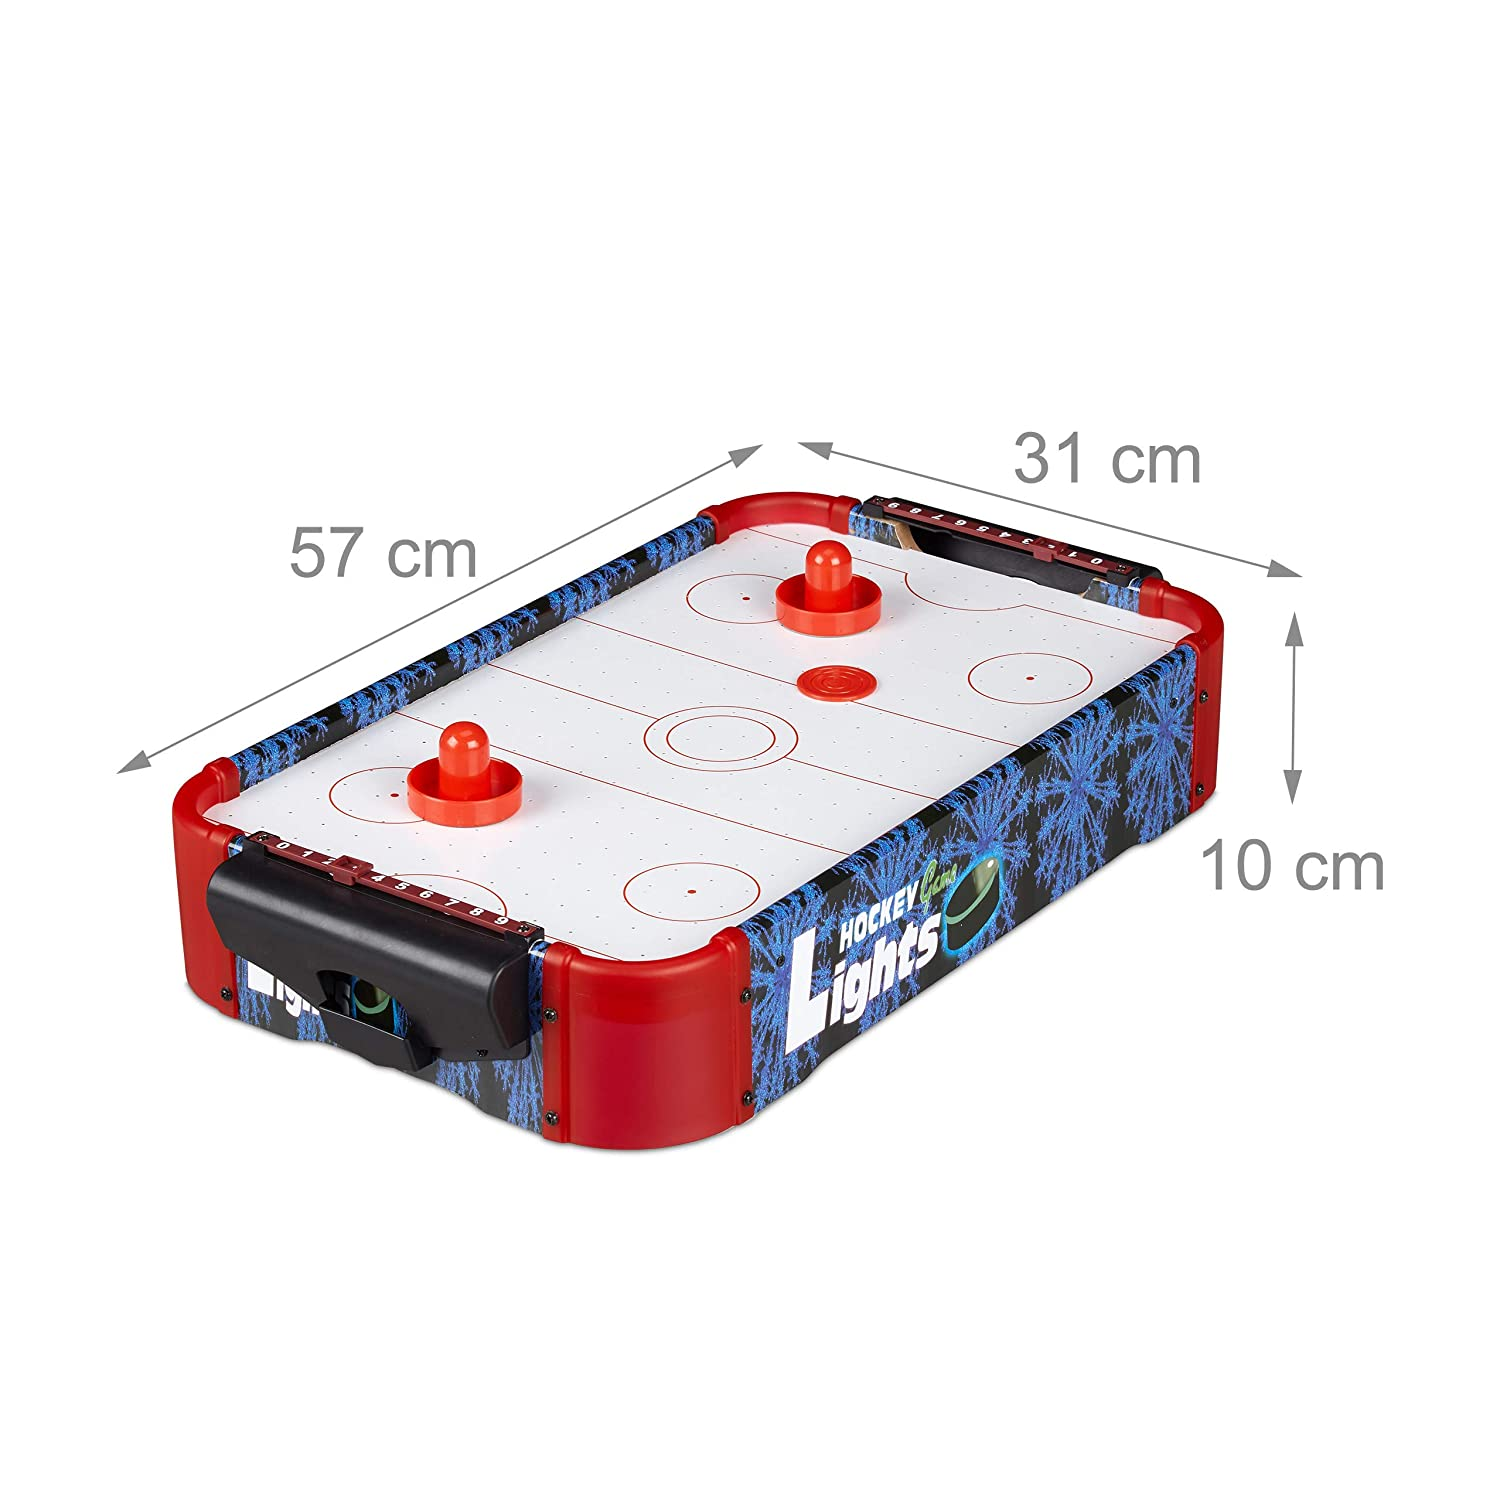 Relaxdays Air Hockey Table, Luz LED, Juego de Mesa, con Ventilador ...